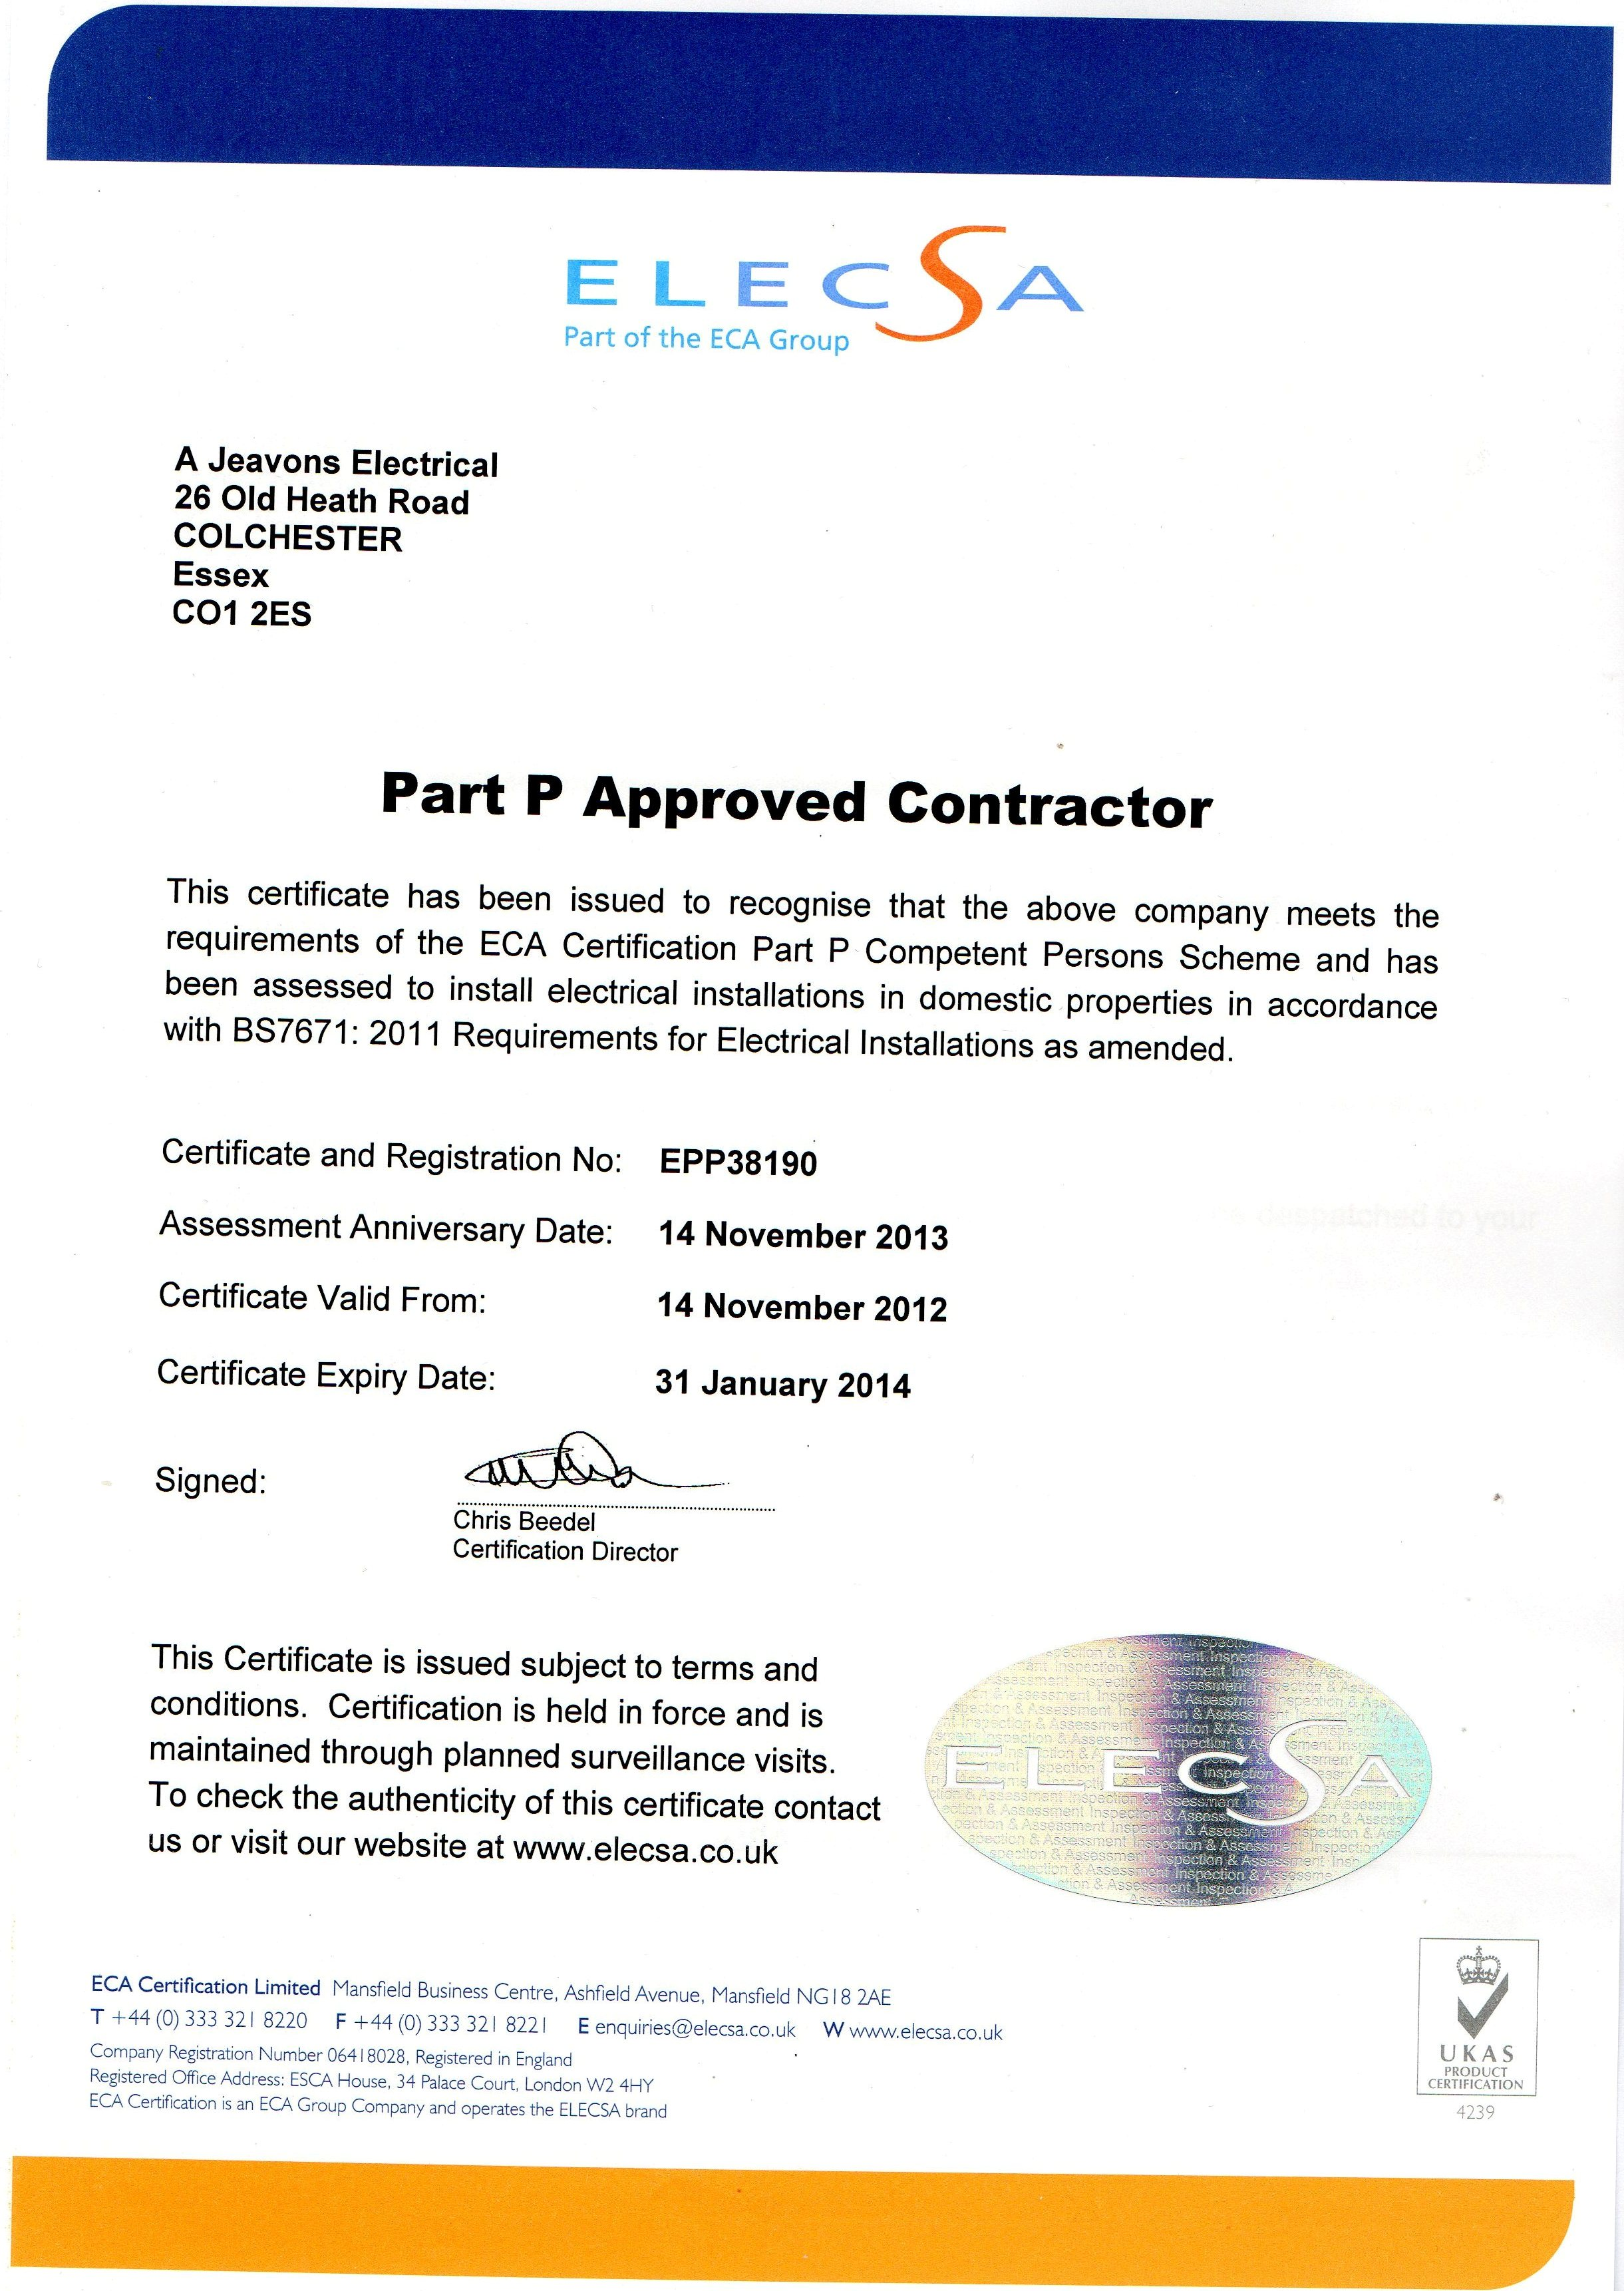 Part P Certificate >> A Jeavons Electrical Of Colchester Installation And Service